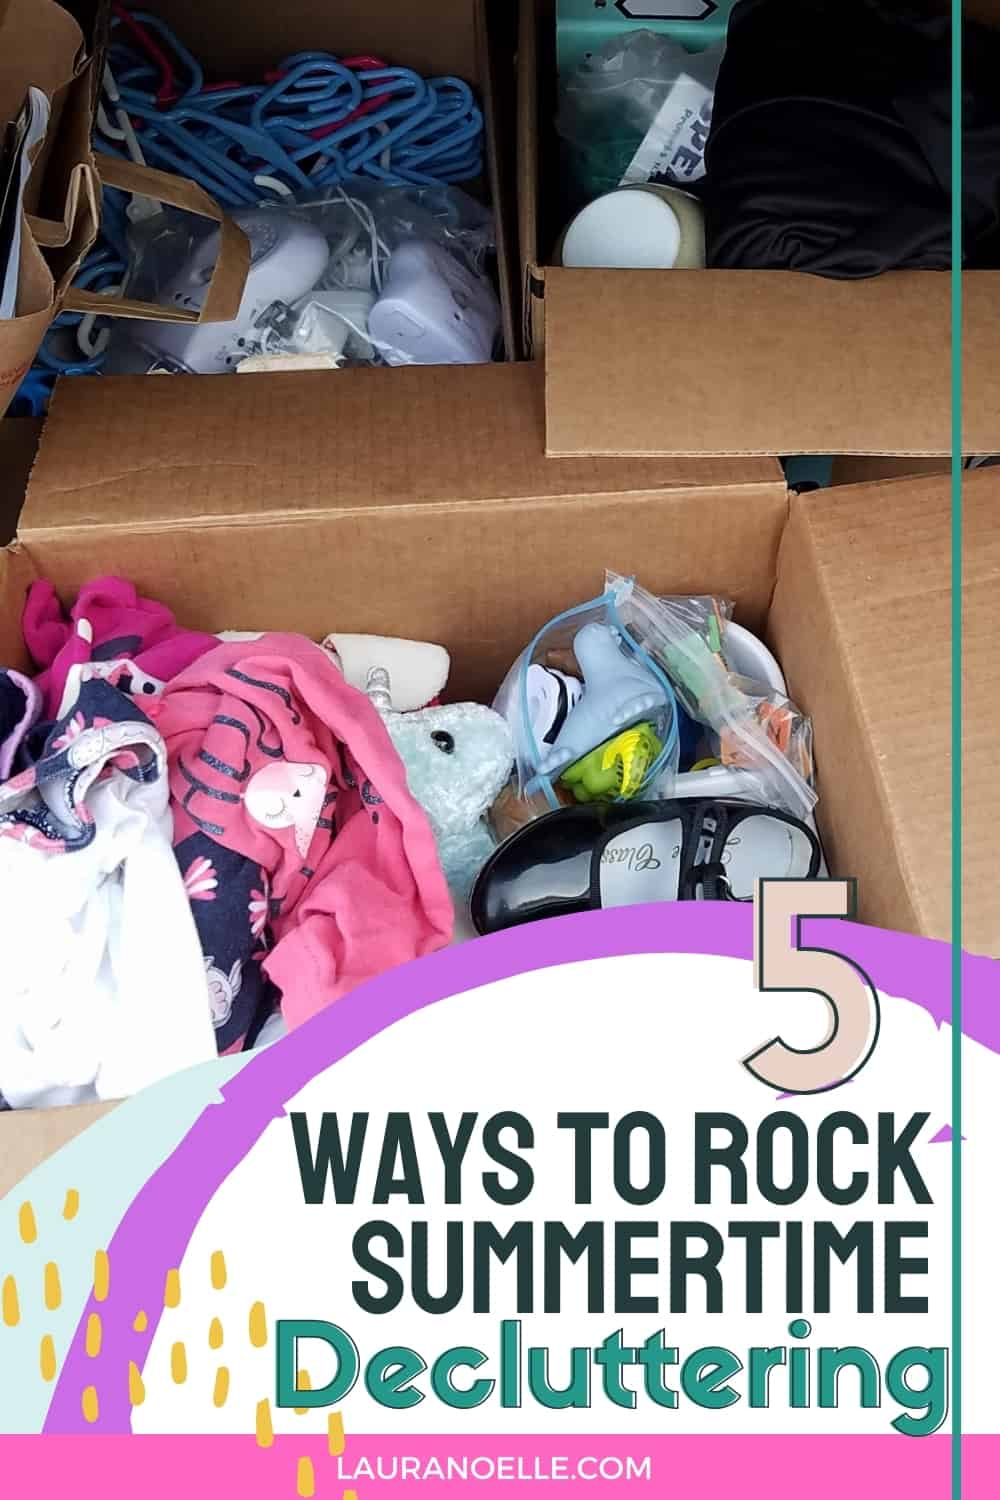 It's finally summer -- the kids are out of school and you are free to finally dig in and declutter the house! Here are 5 ways to make the most of your efforts.